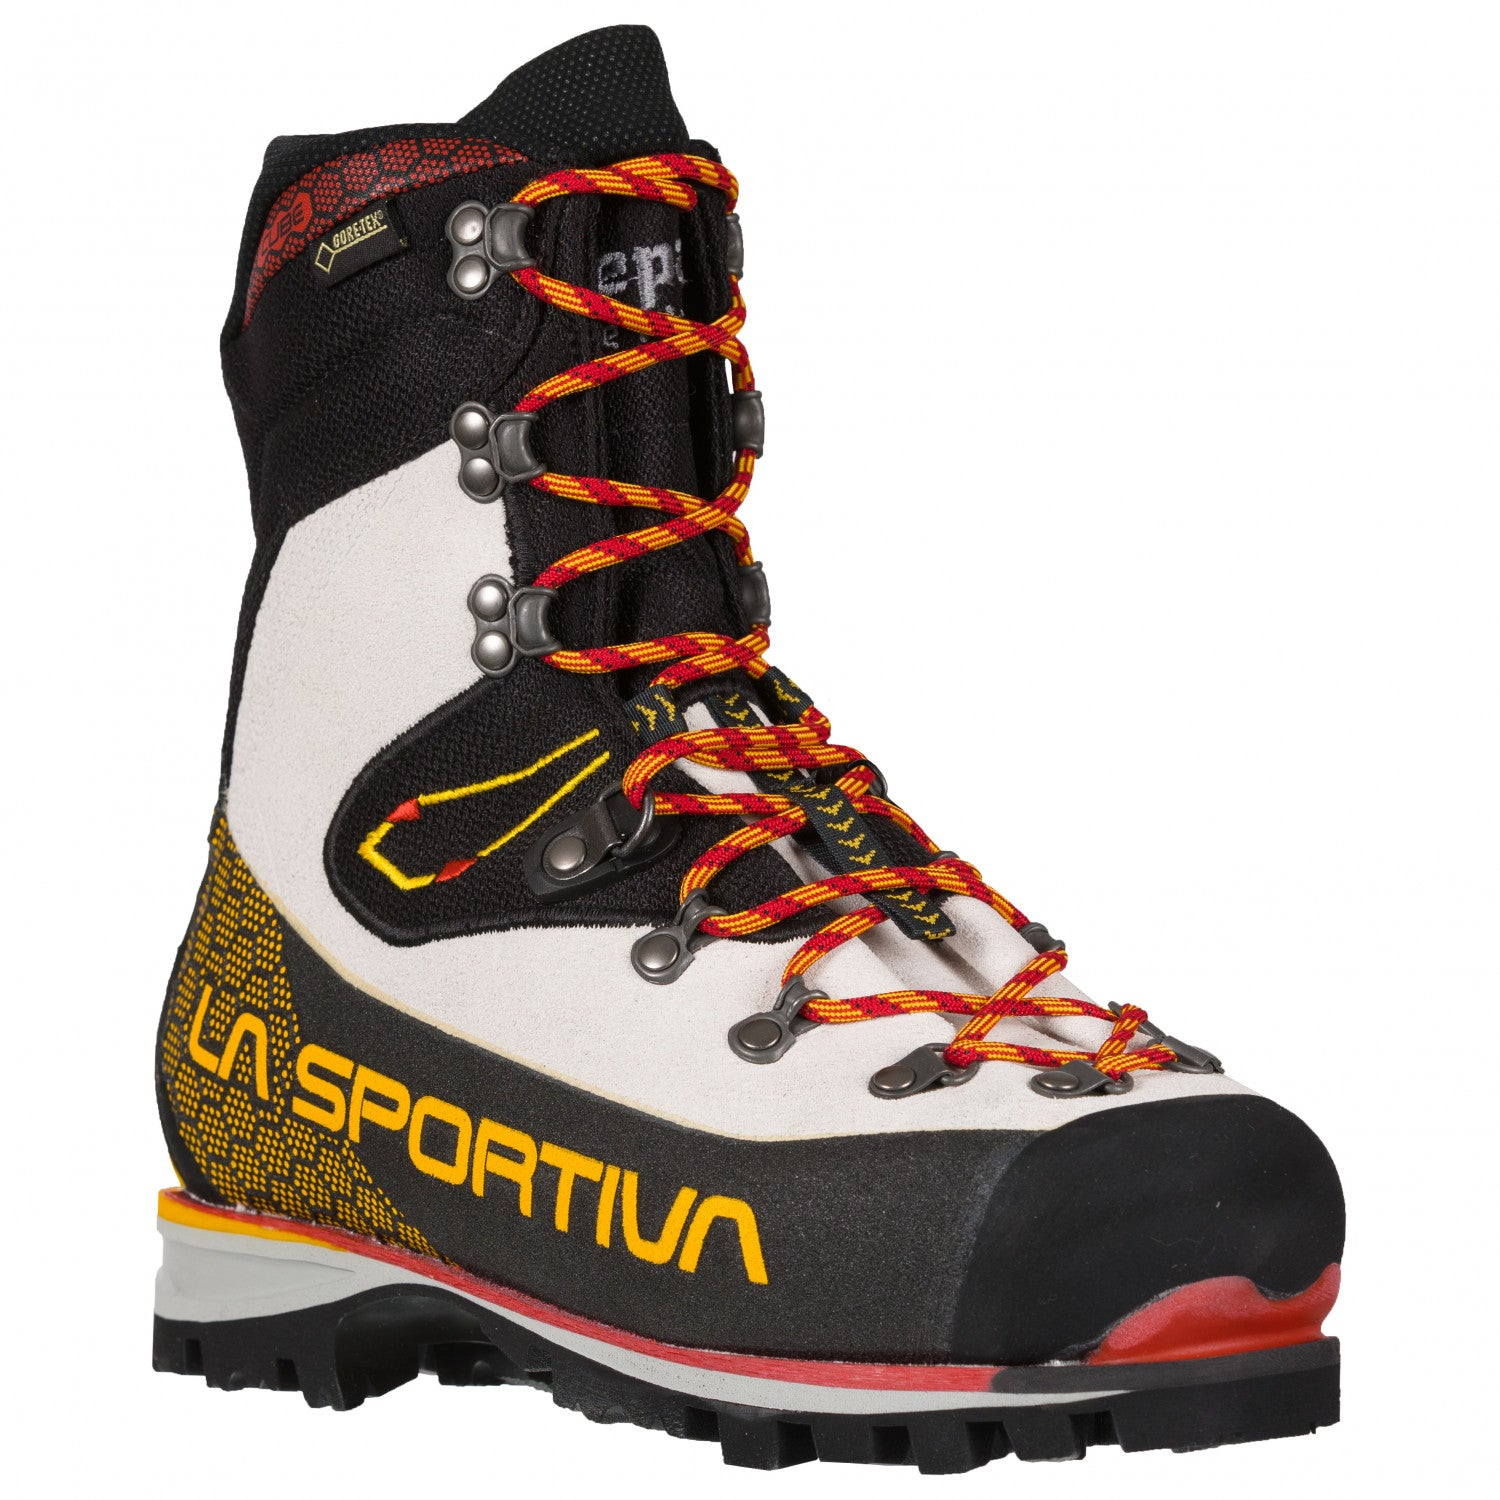 La Sportiva Nepal Cube GTX Womens mountaineering boot, front/side view